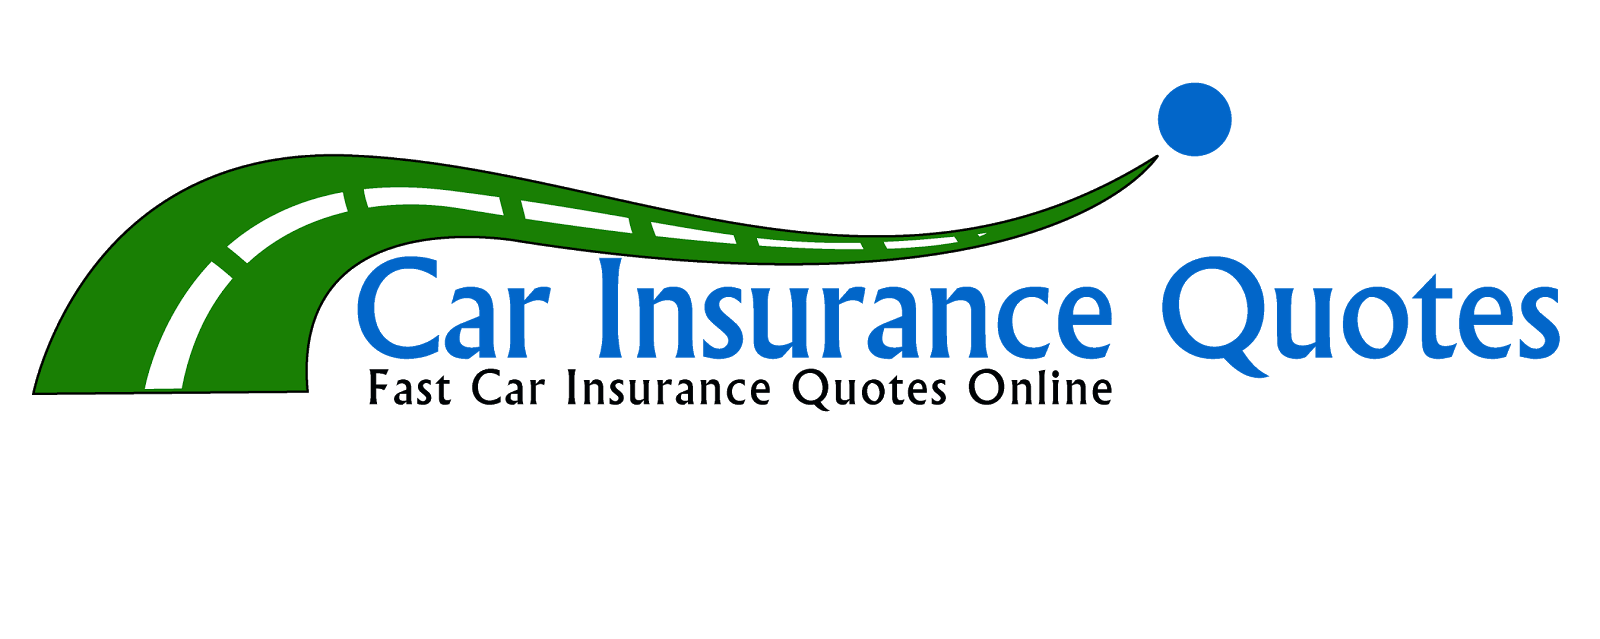 Car Insurance Quote Amazing Free Car Insurance Quotes Online  Places To Visit  Pinterest . Design Decoration